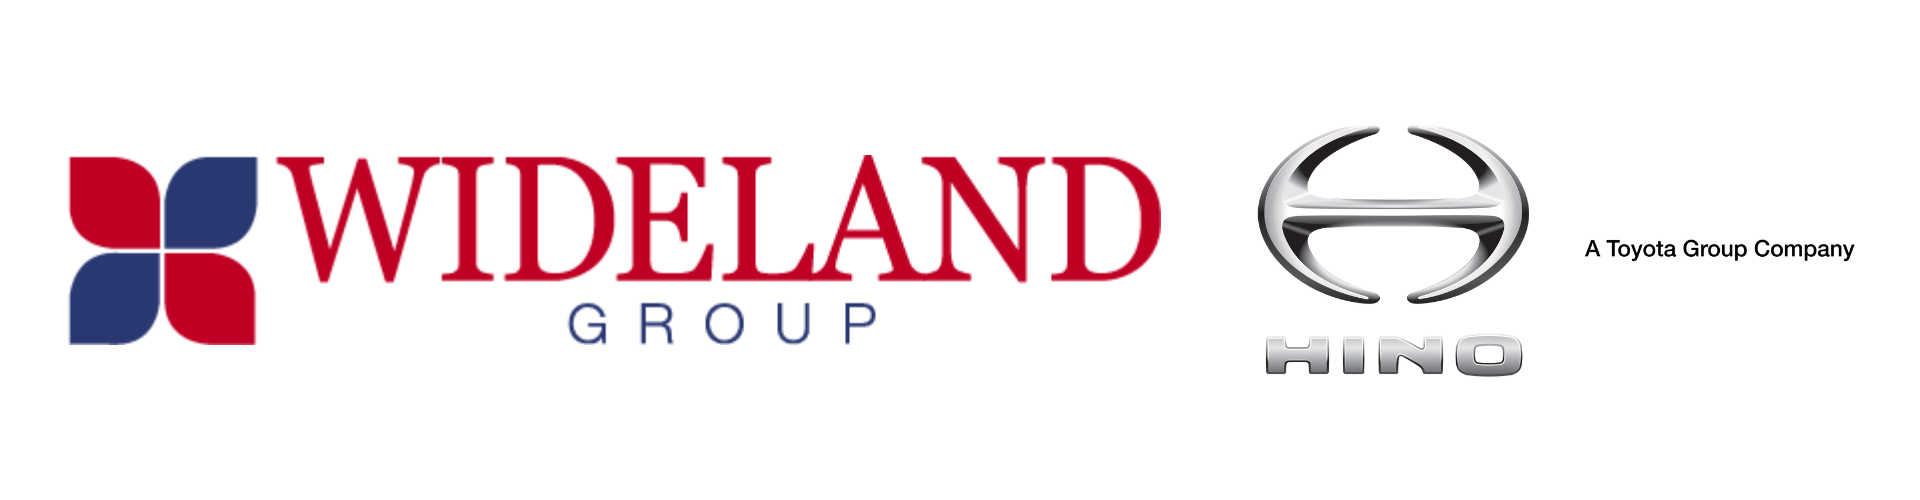 Wideland Group acquires Hino Toowoomba from RDO Group (Vanderfield)